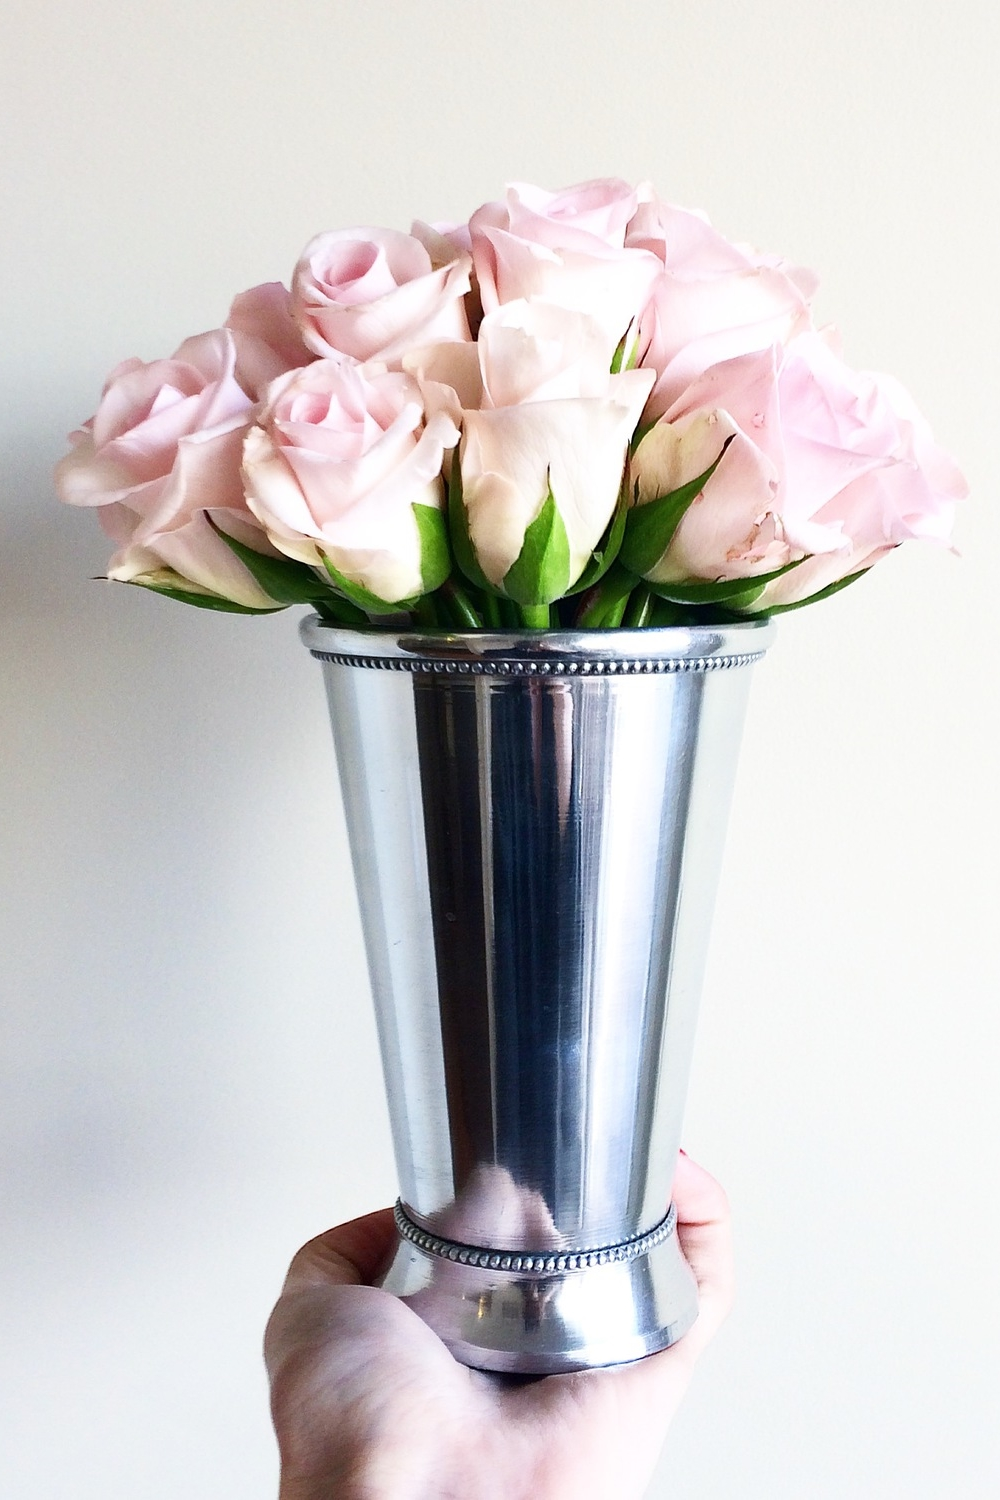 Friday Flowers - Pink Roses | Sundays and Somedays